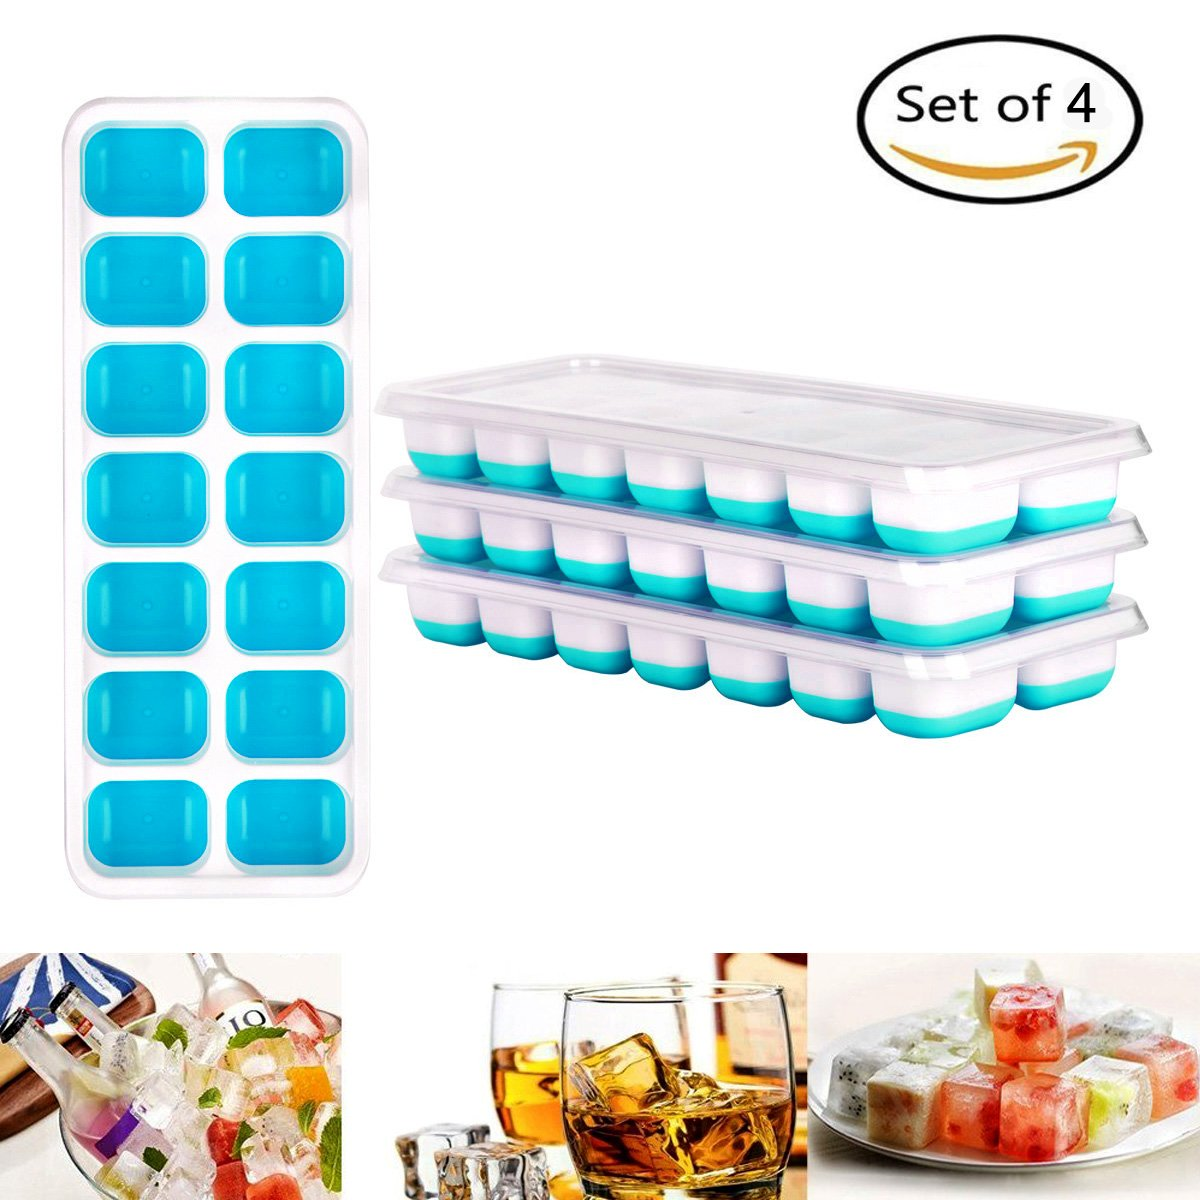 GYMAN Ice Cube Trays Flexible 14-Ice Trays Easy-Release Silicone with Spill-Resistant Removable Lid Stackable Durable and Dishwasher Safe LFGB Certified, BPA Free -- 4 Pack